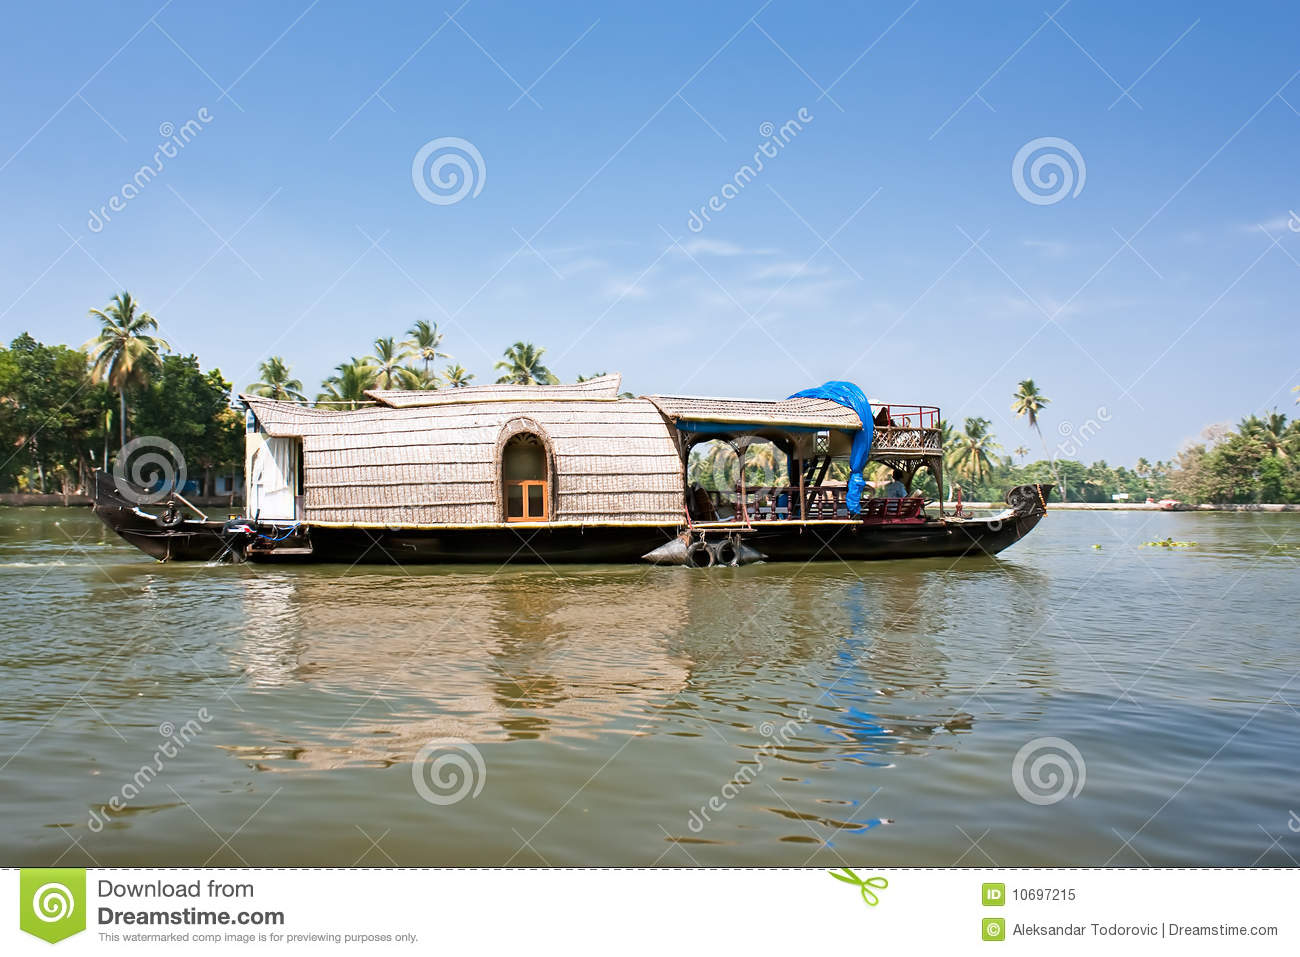 houseboat clipart - photo #26